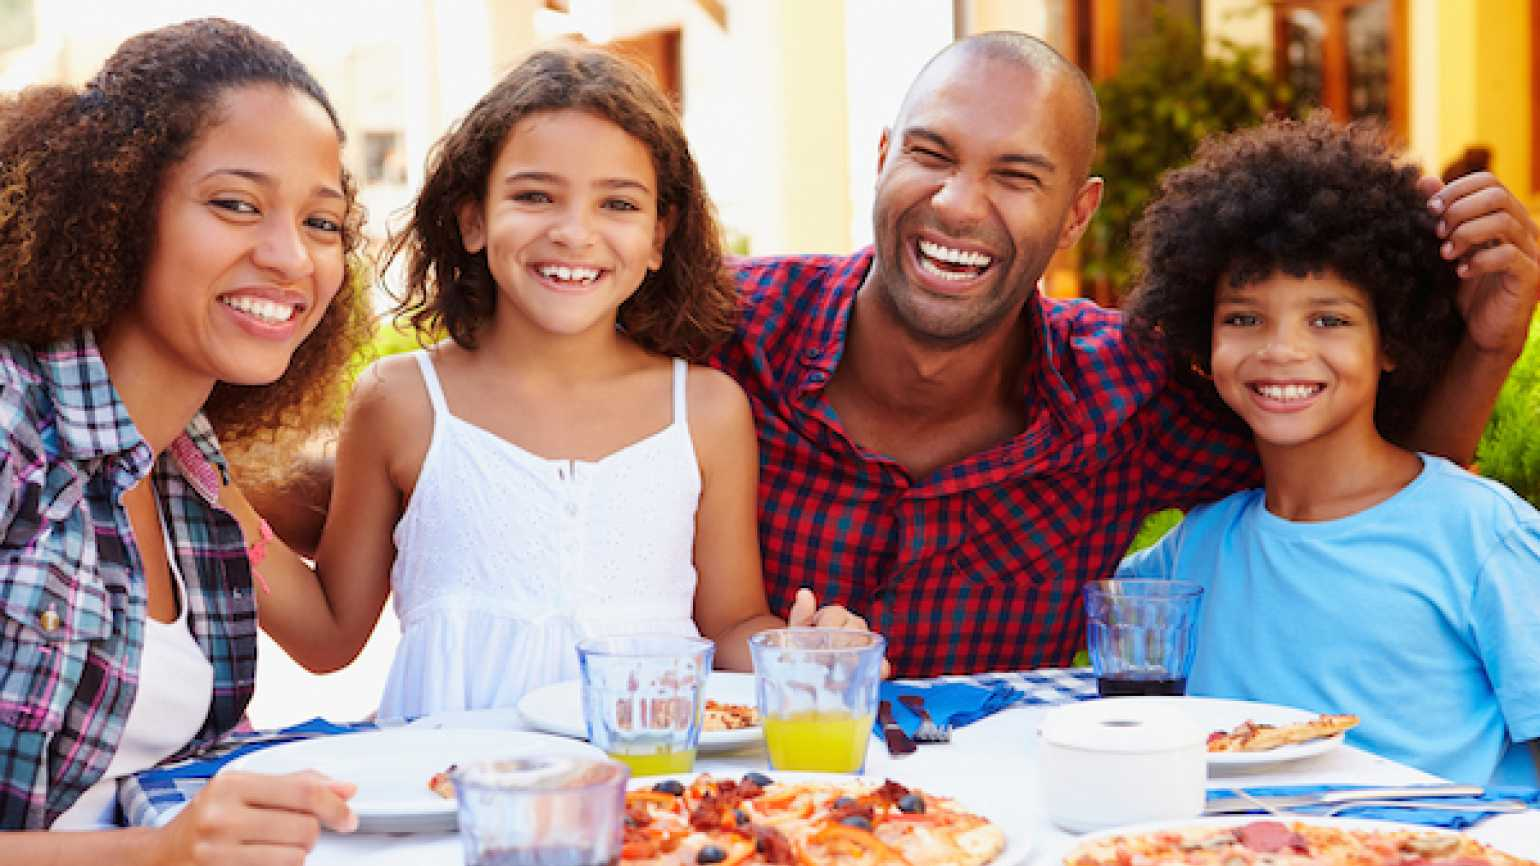 Special discounts and offers for military families this summer